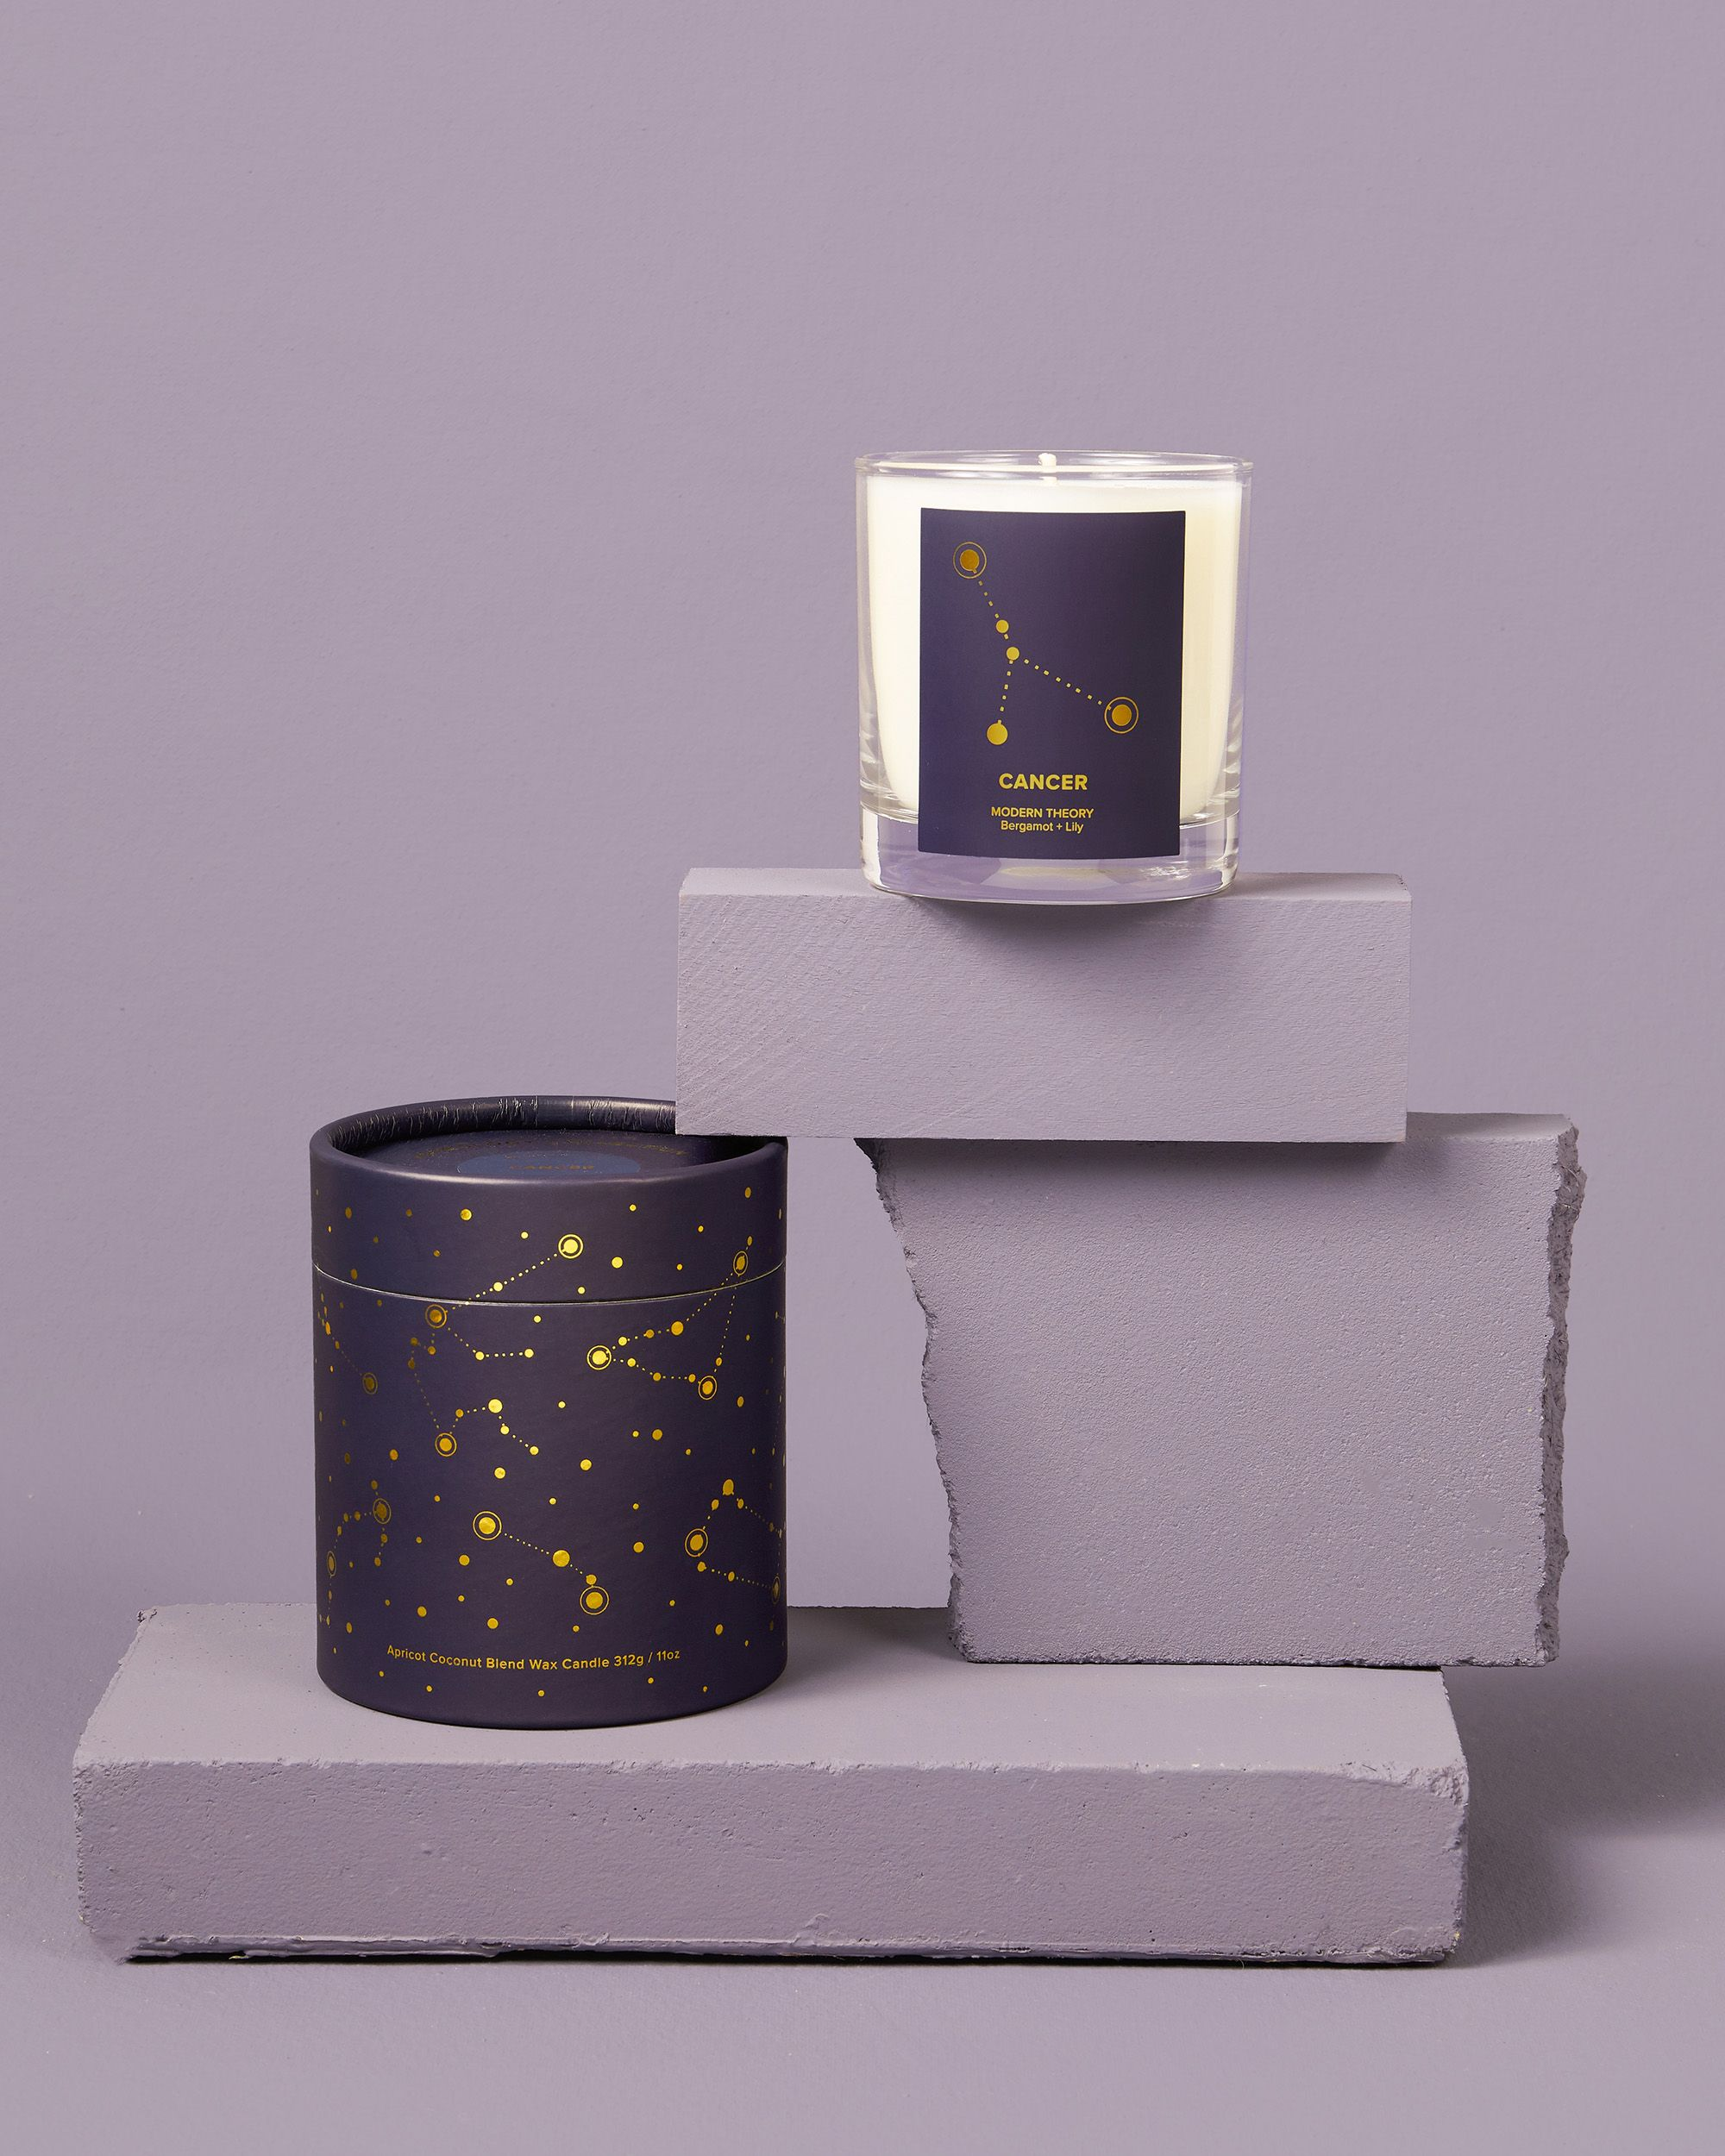 Product Image for Cancer Candle